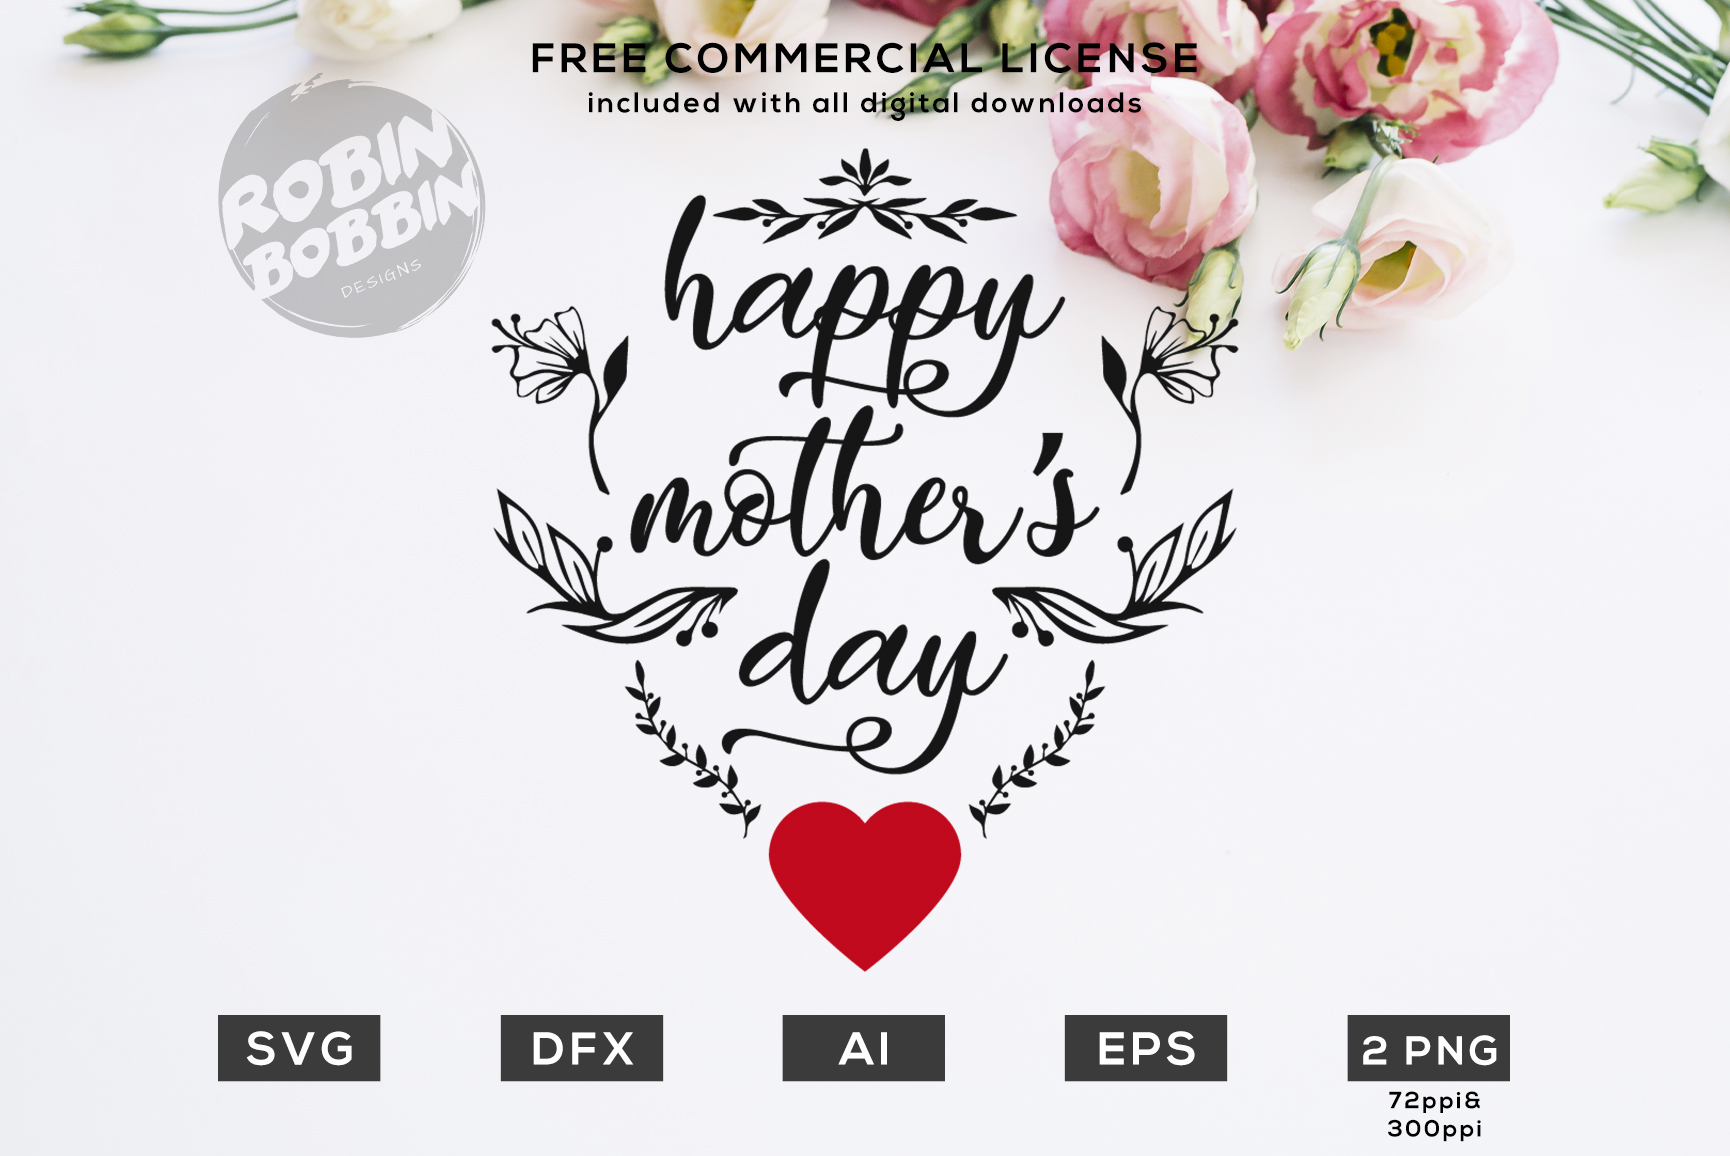 Happy Mother Day - Design for T-Shirt, Hoodies, Mugs example image 1